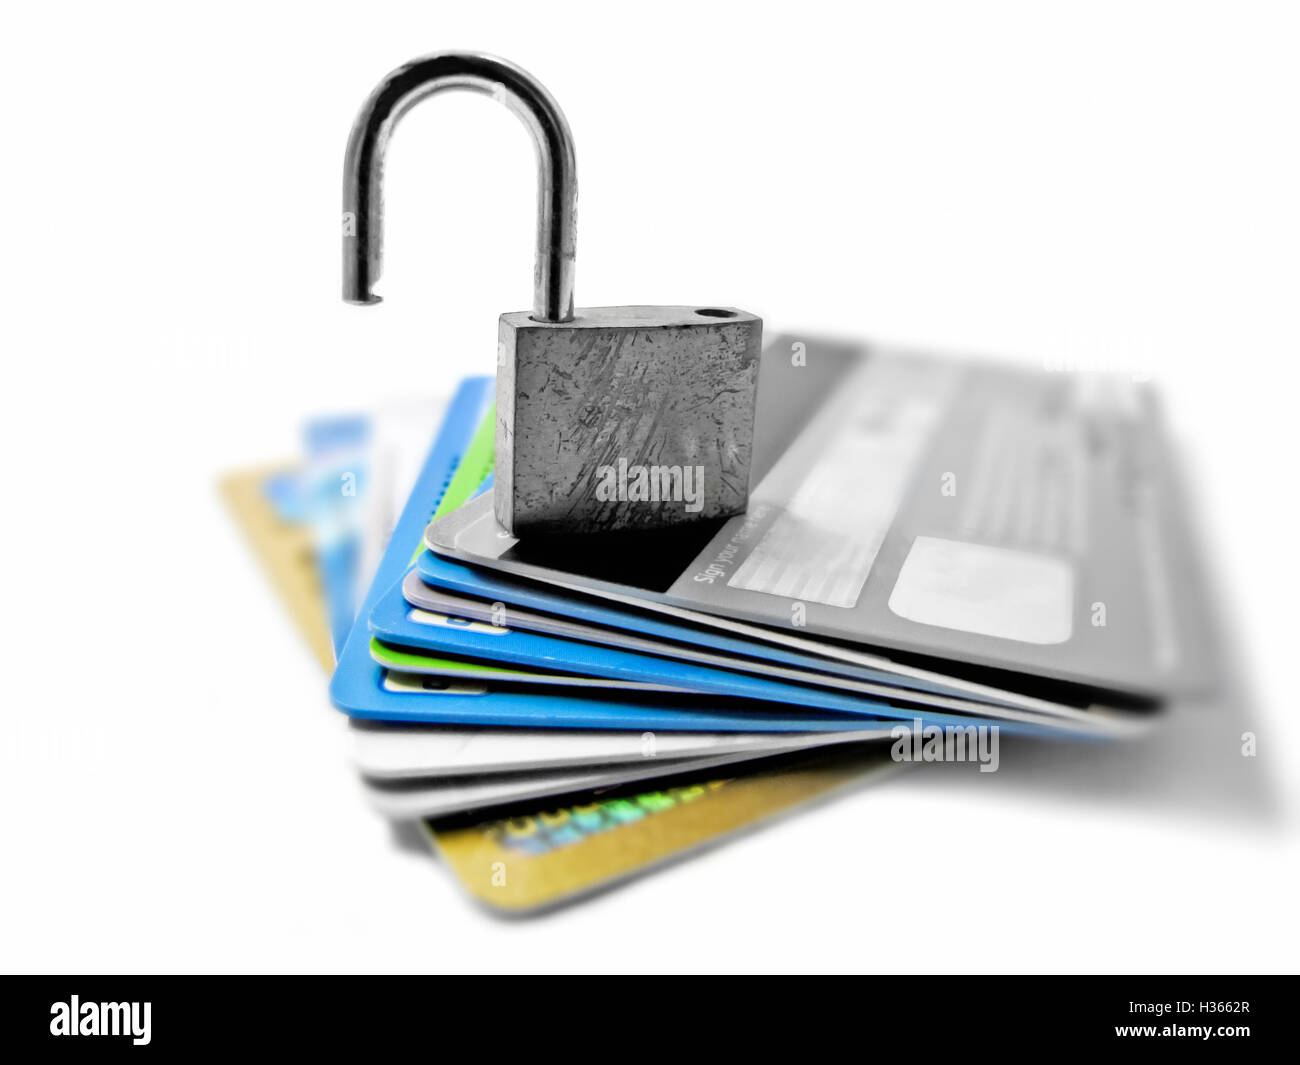 Hacked and vulnerable unsafe unsecured identity and financial theft concept - Stock Image